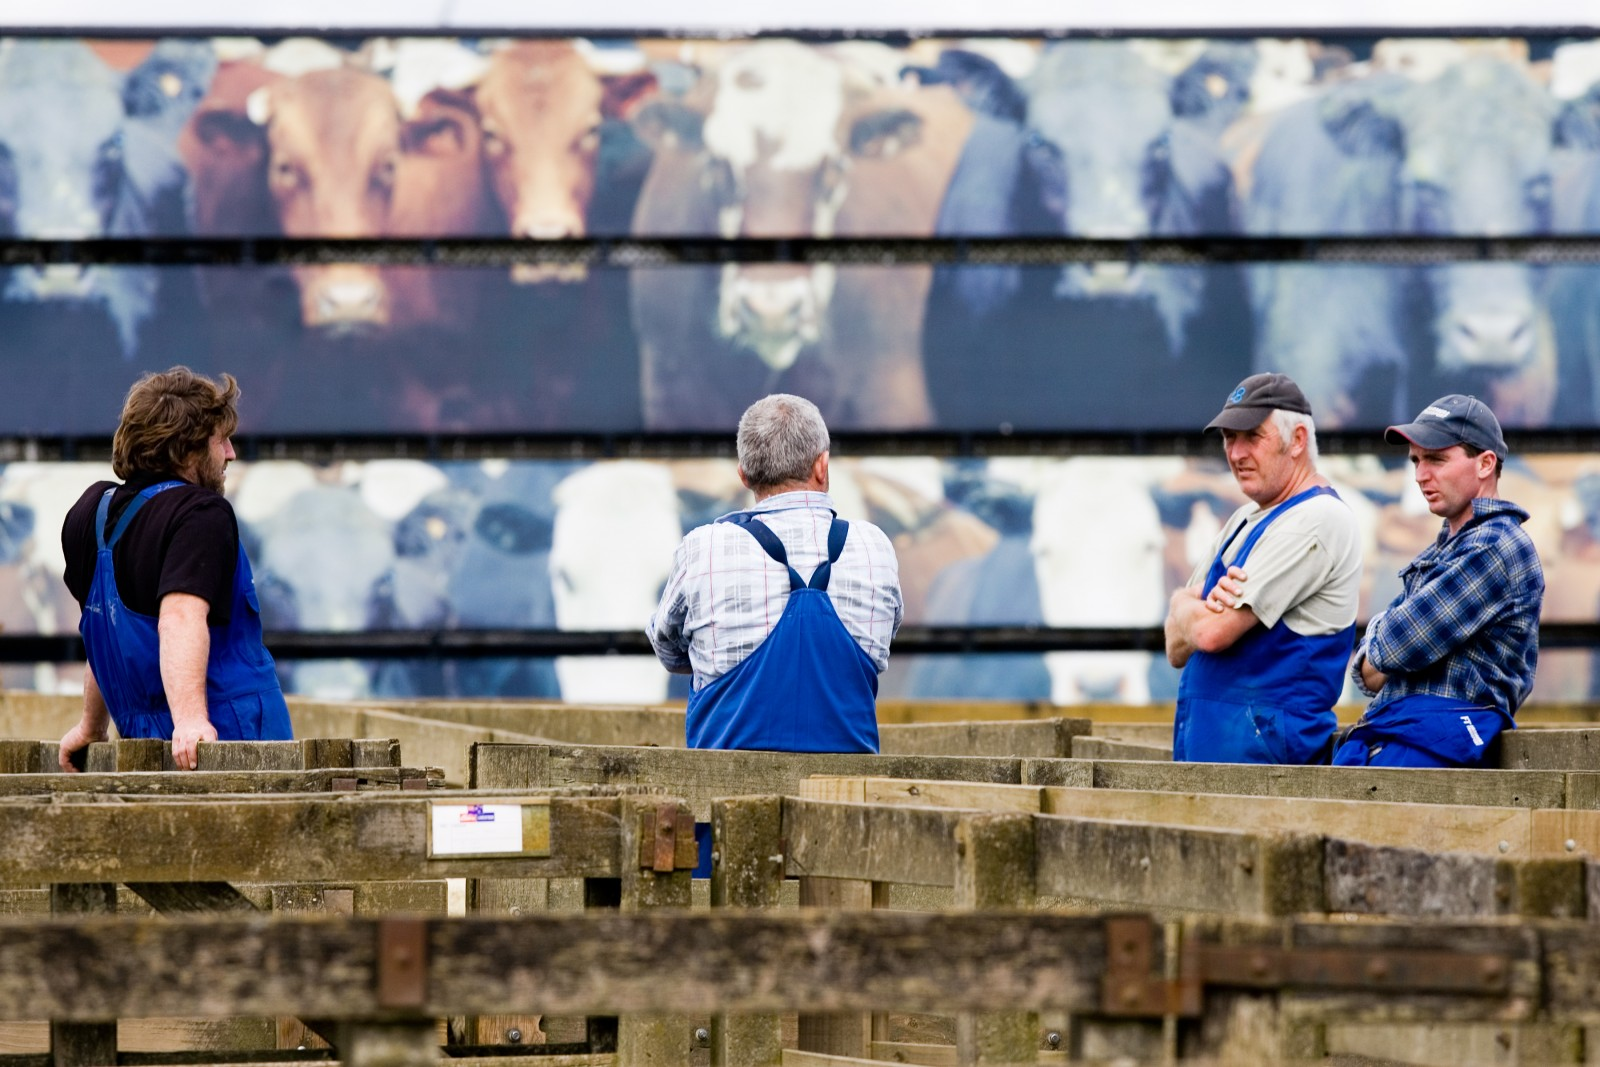 Truck drivers take a short break against the backdrop of a mural on the side of a stock truck.